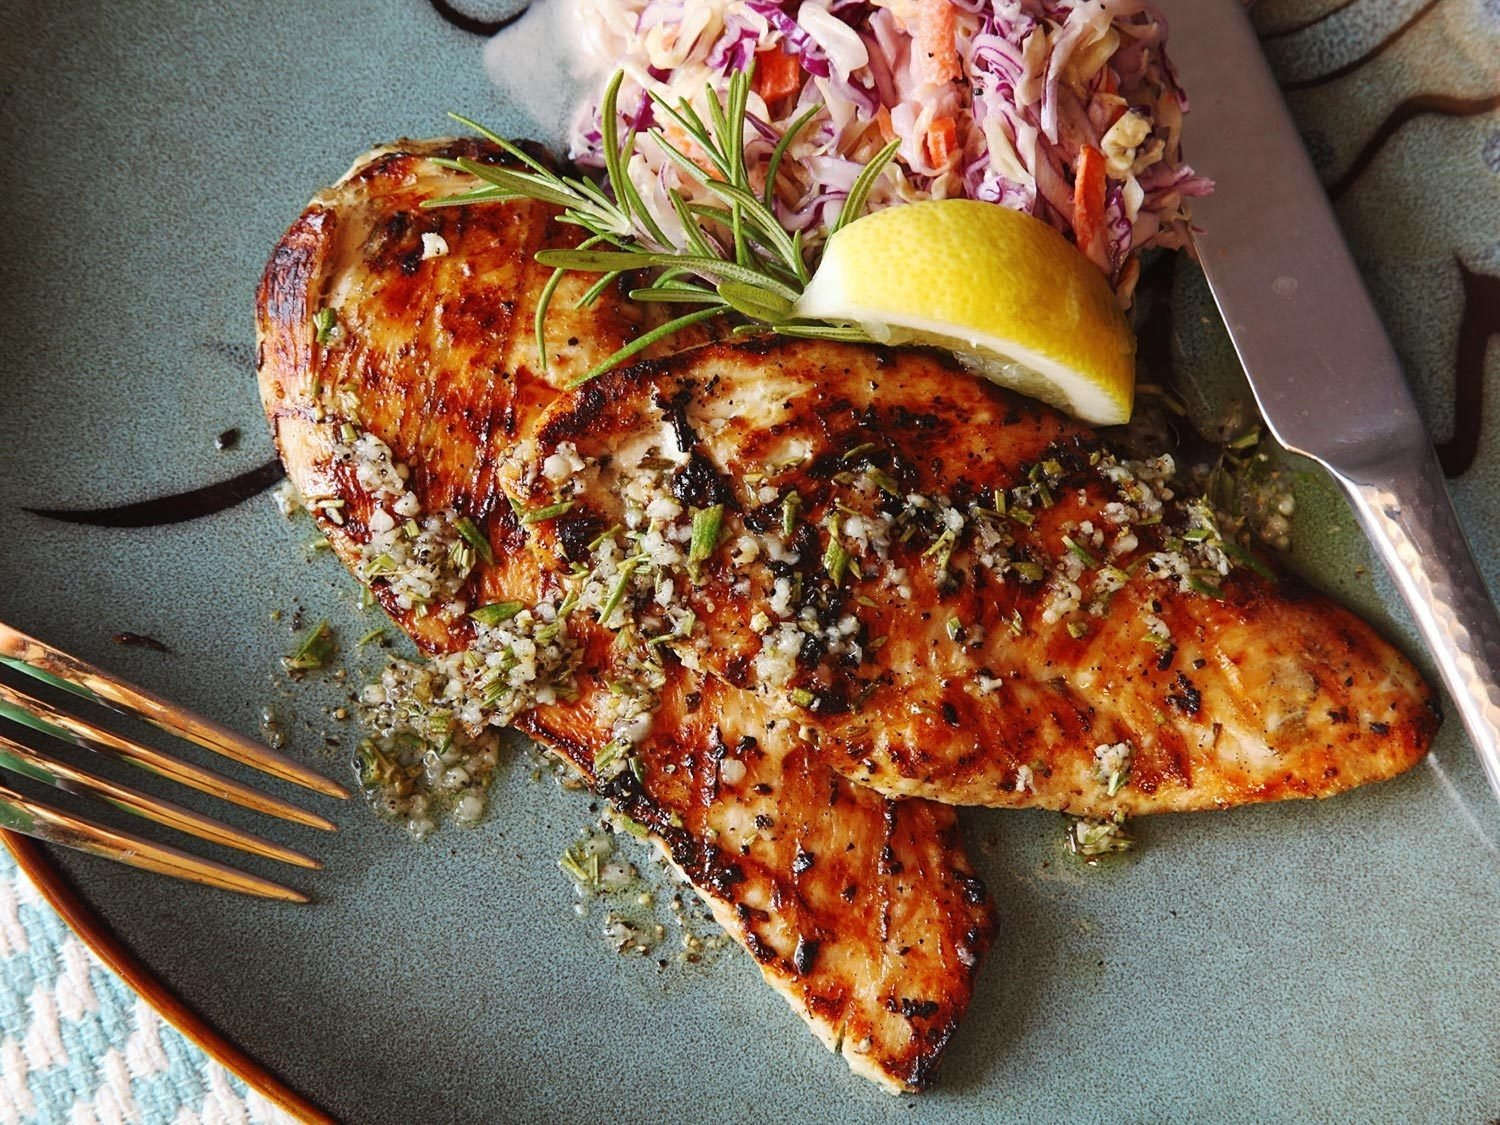 5-minute grilled chicken cutlets with rosemary, garlic, and lemon